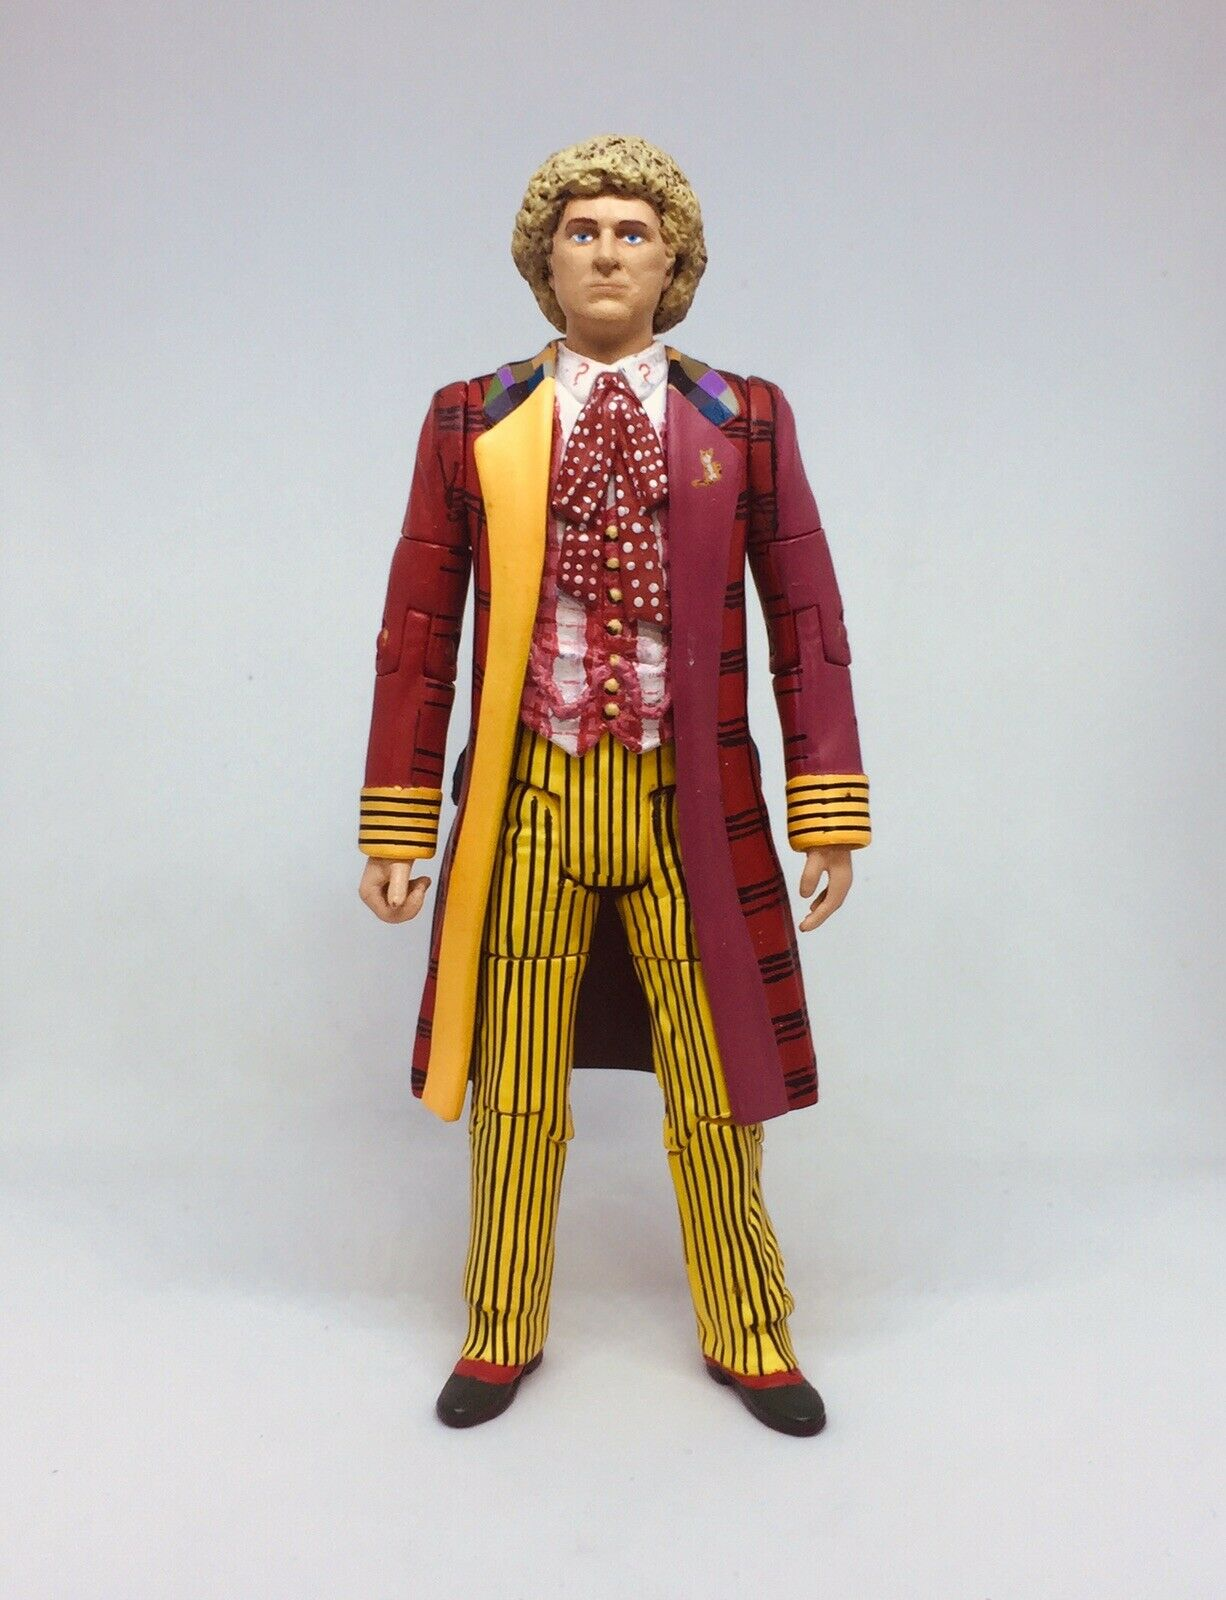 Ebay Customs No Sales Or Self Promotion Page 48 Doctorwhotoys Net Forum